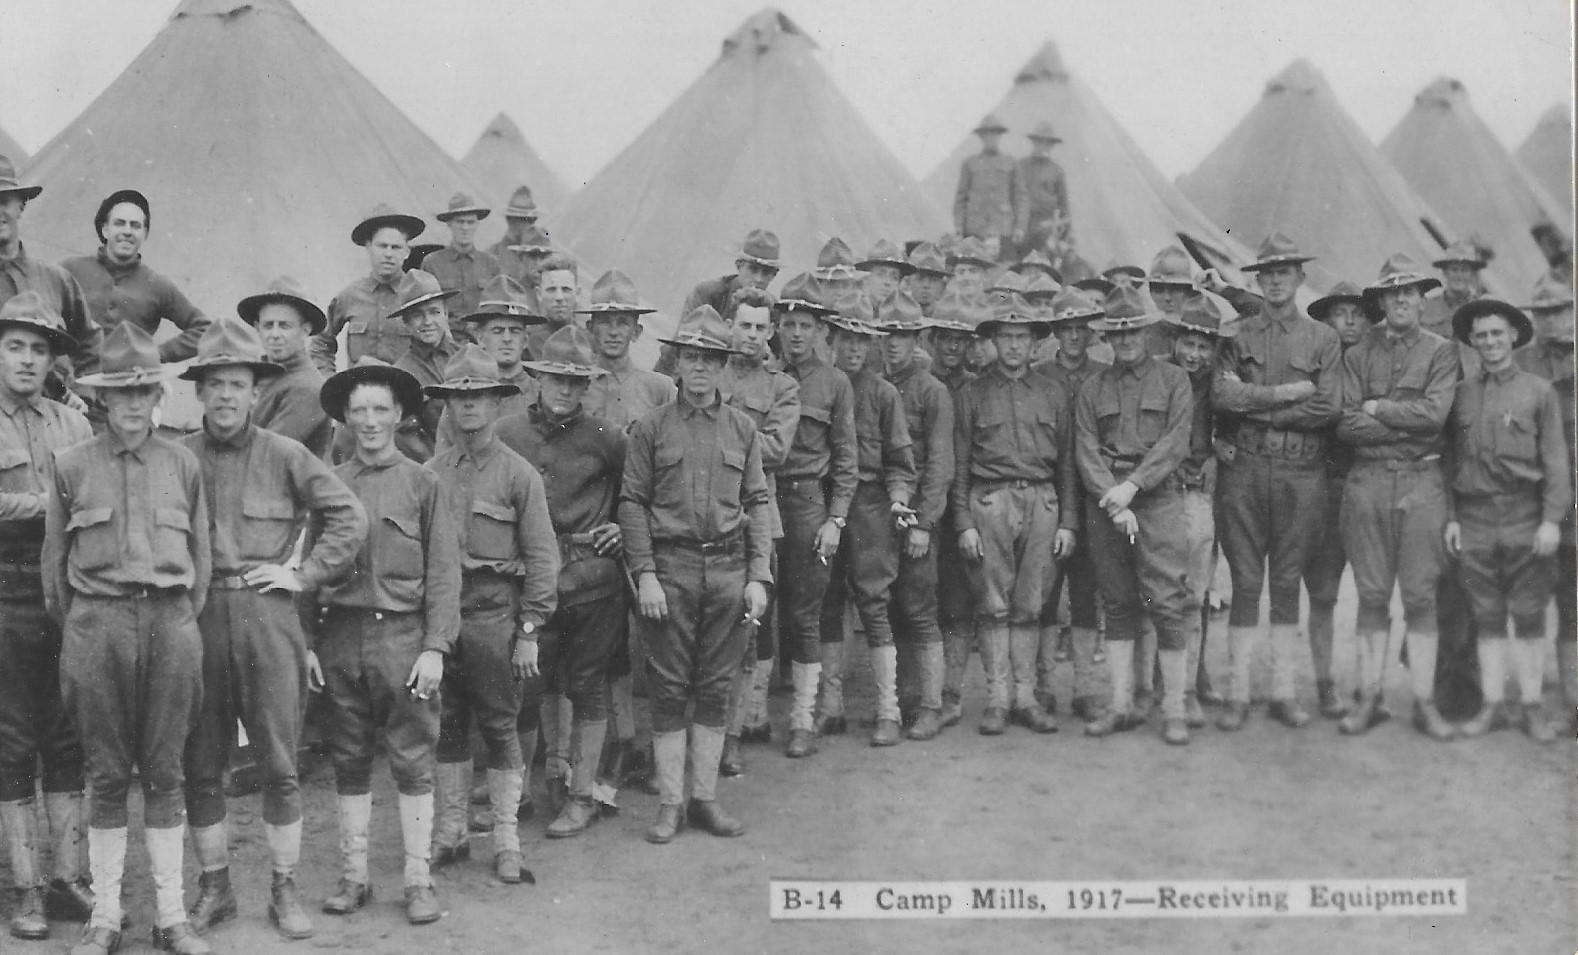 Troops at Camp Mills in World War One